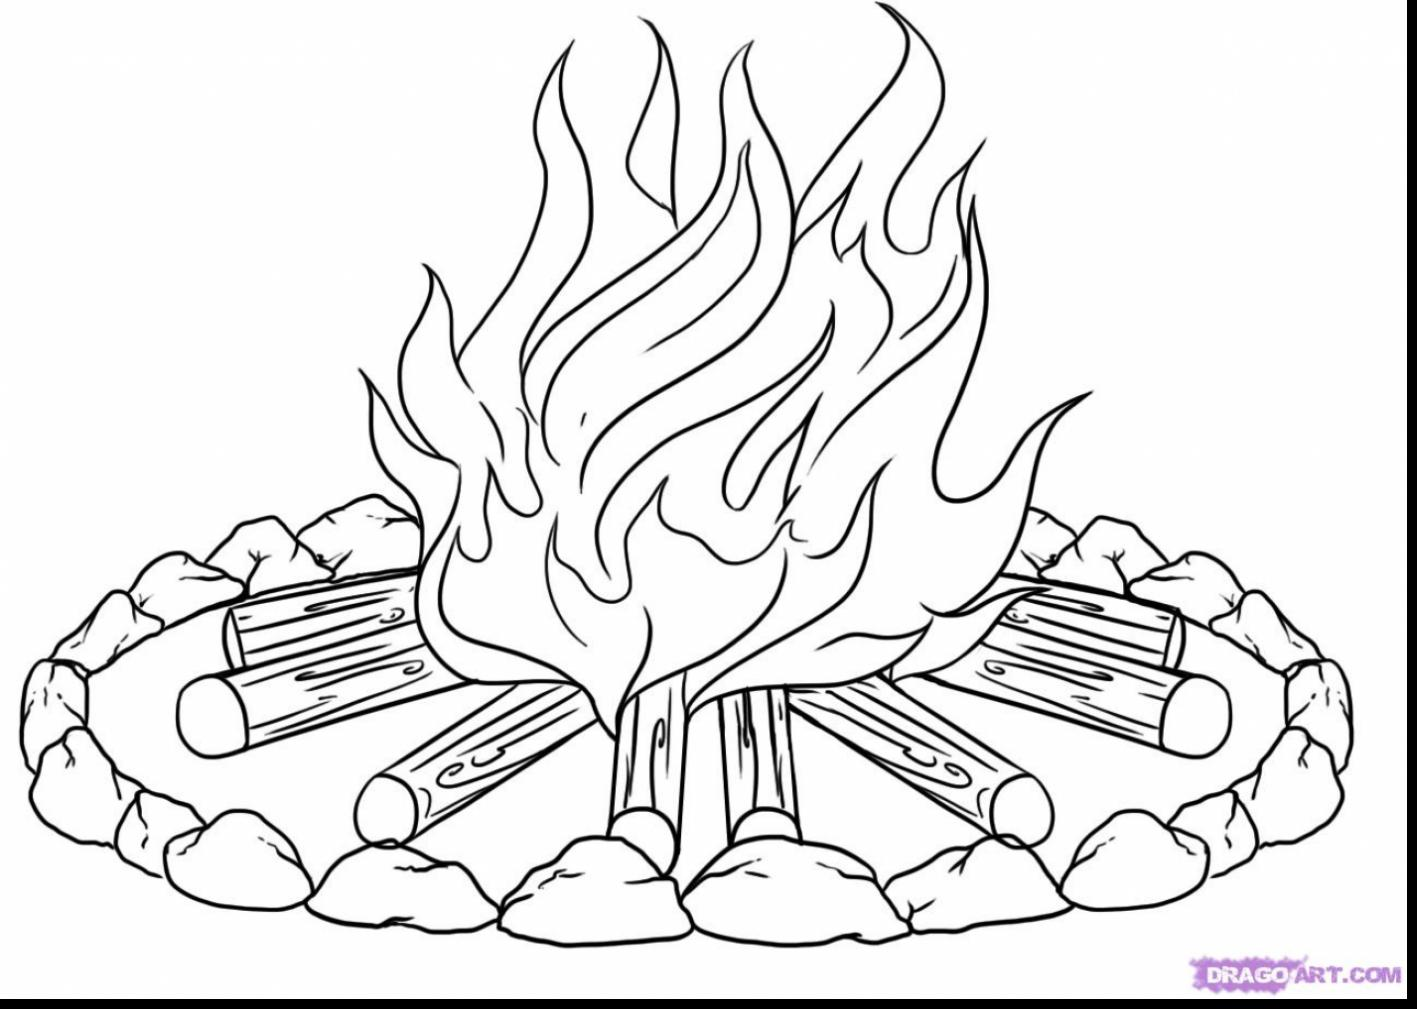 1417x1009 Fire Coloring Pages Impressive Flames With And Flame Page